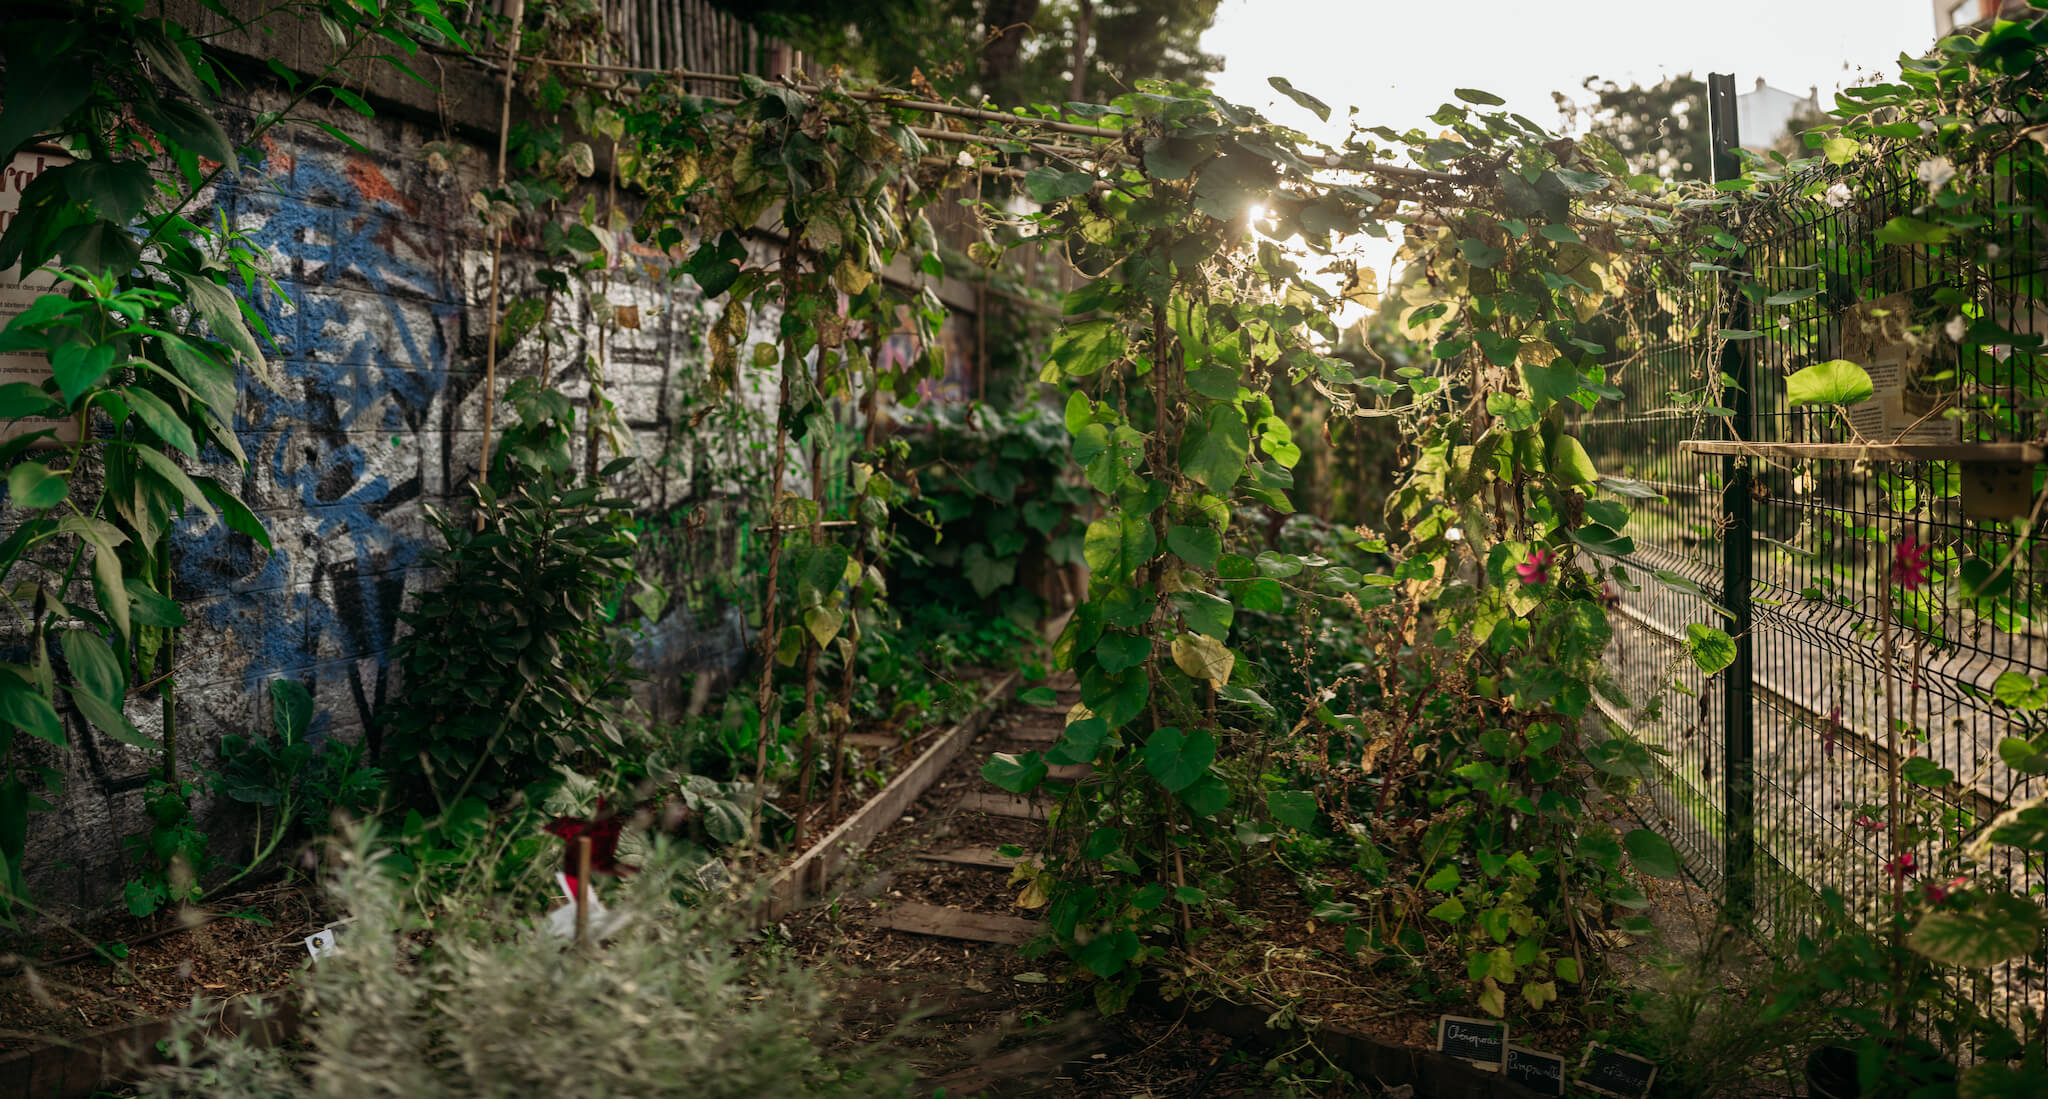 At La REcyclerie, a community space and restaurant in northern Paris, a garden grows along the old Petite Ceinture railway tracks.